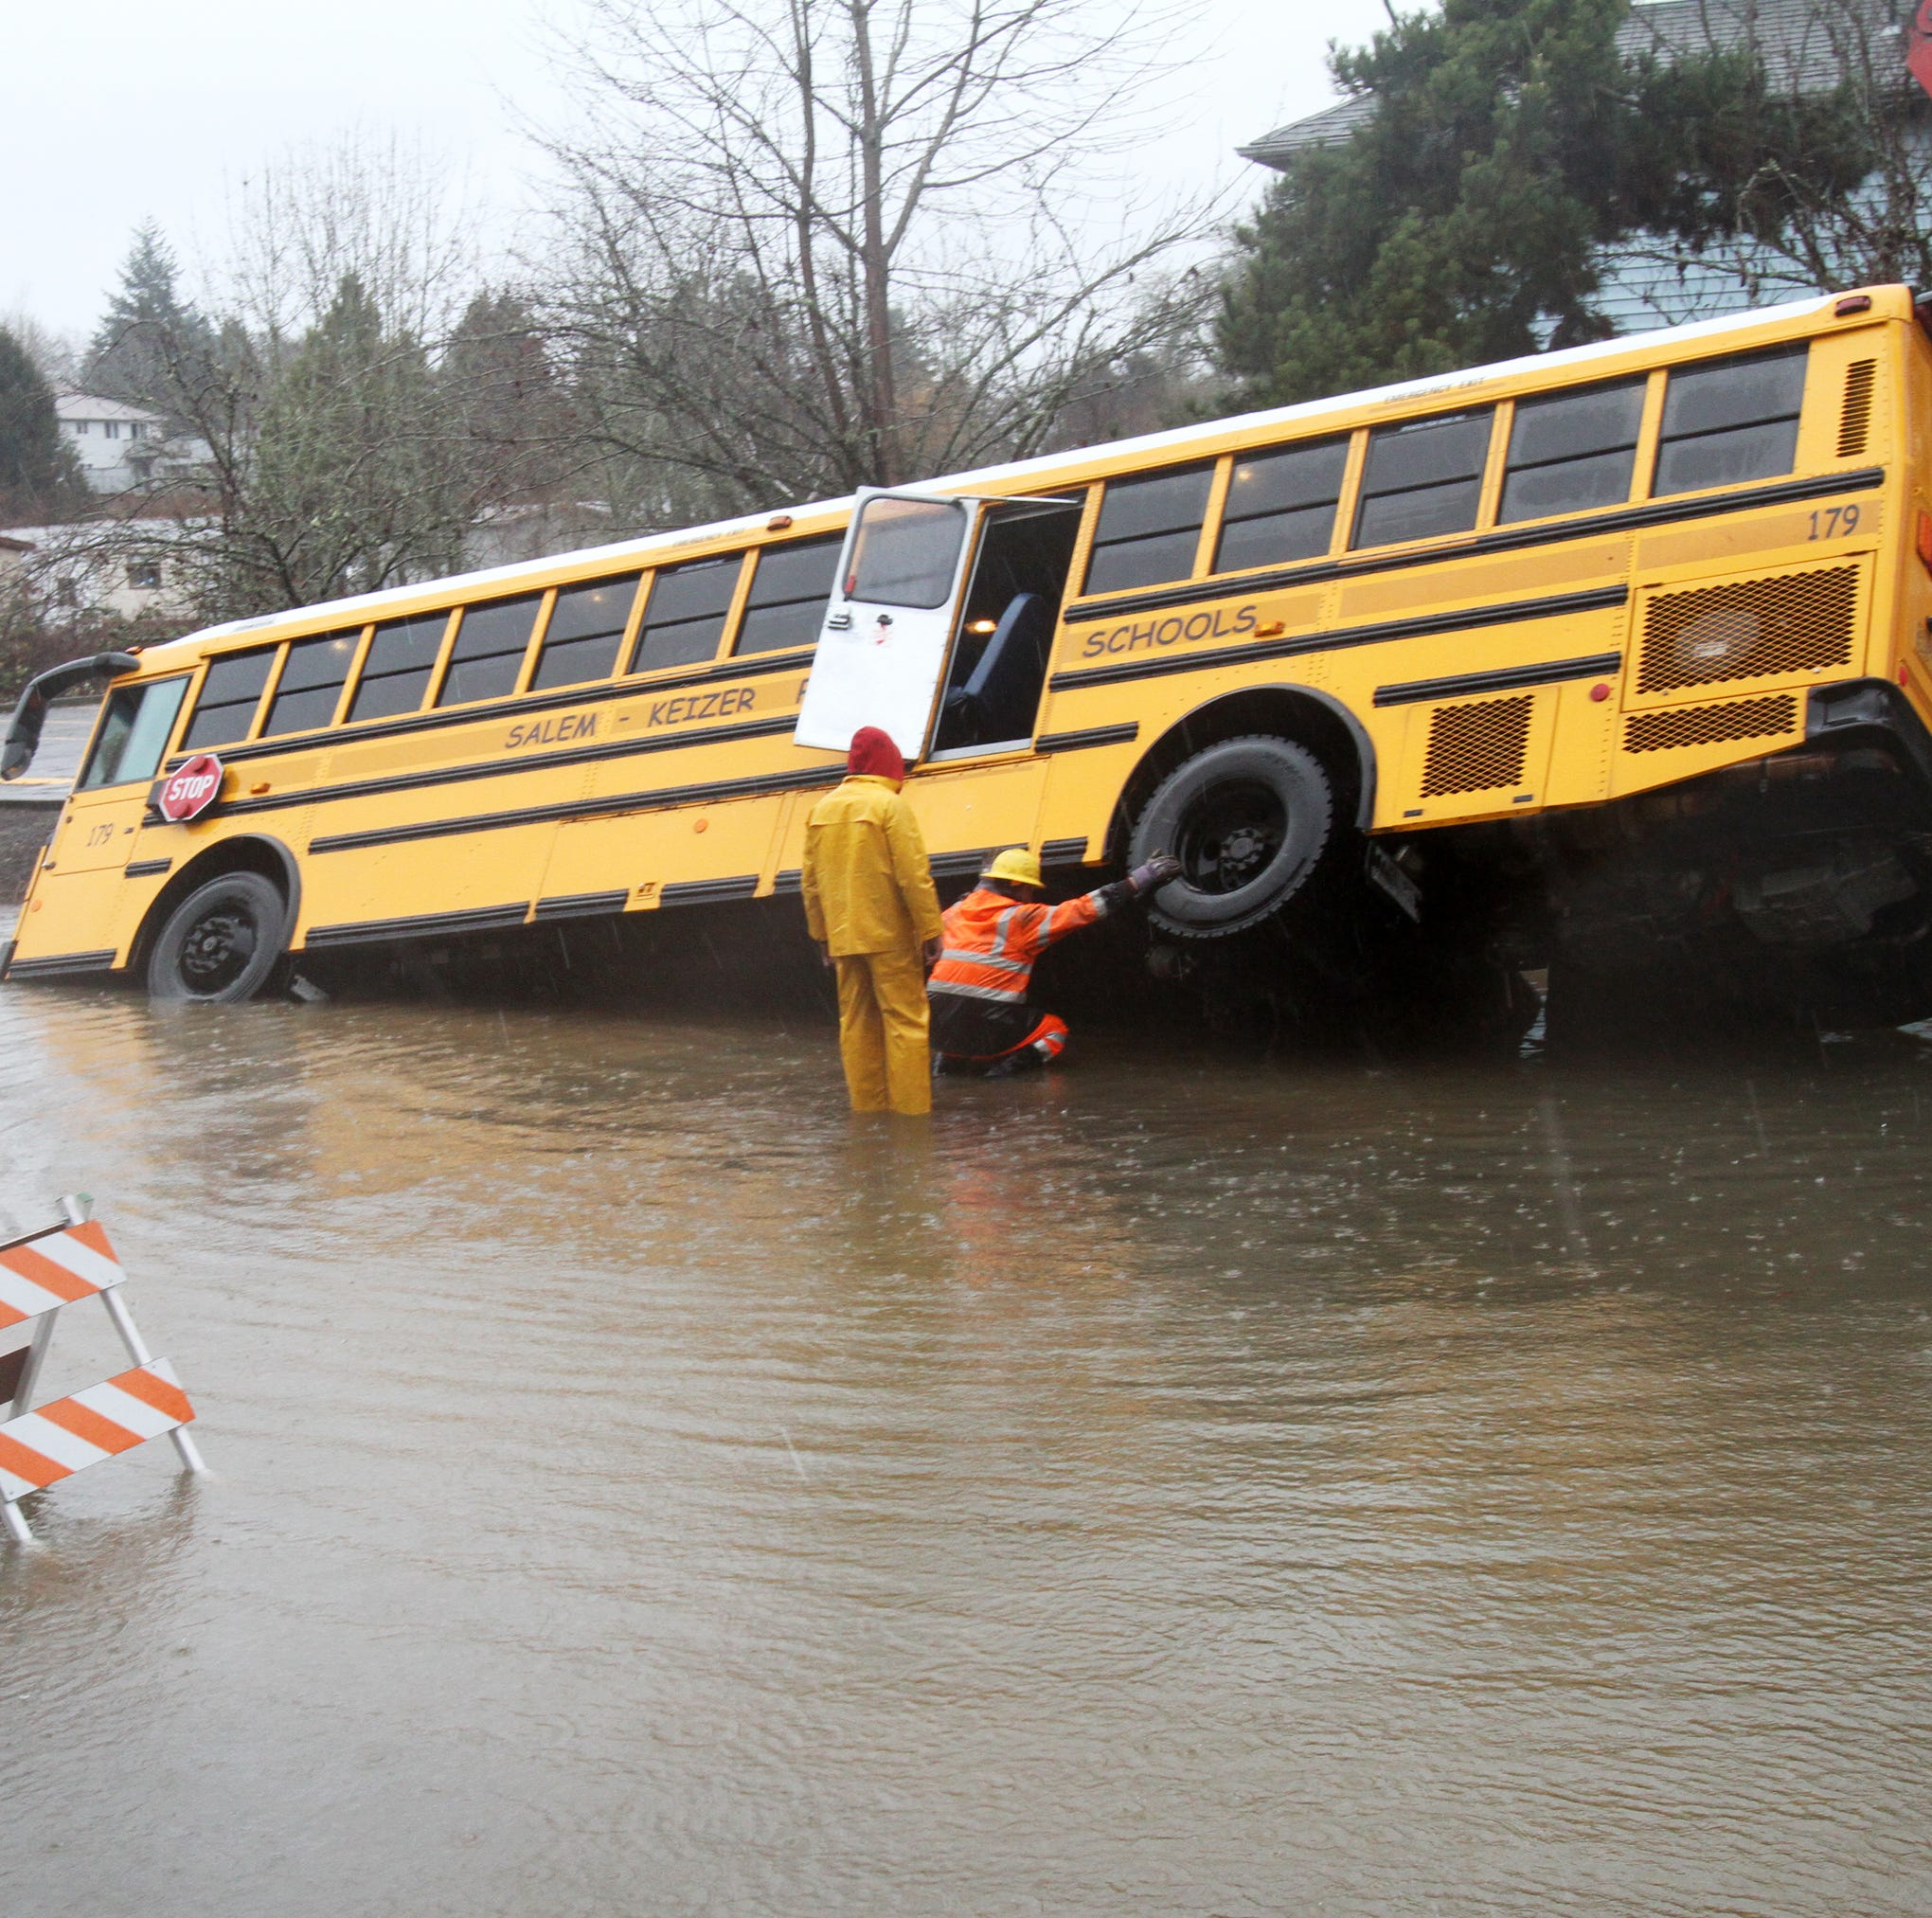 Willamette Valley flooding: How does this high water compare to past floods?